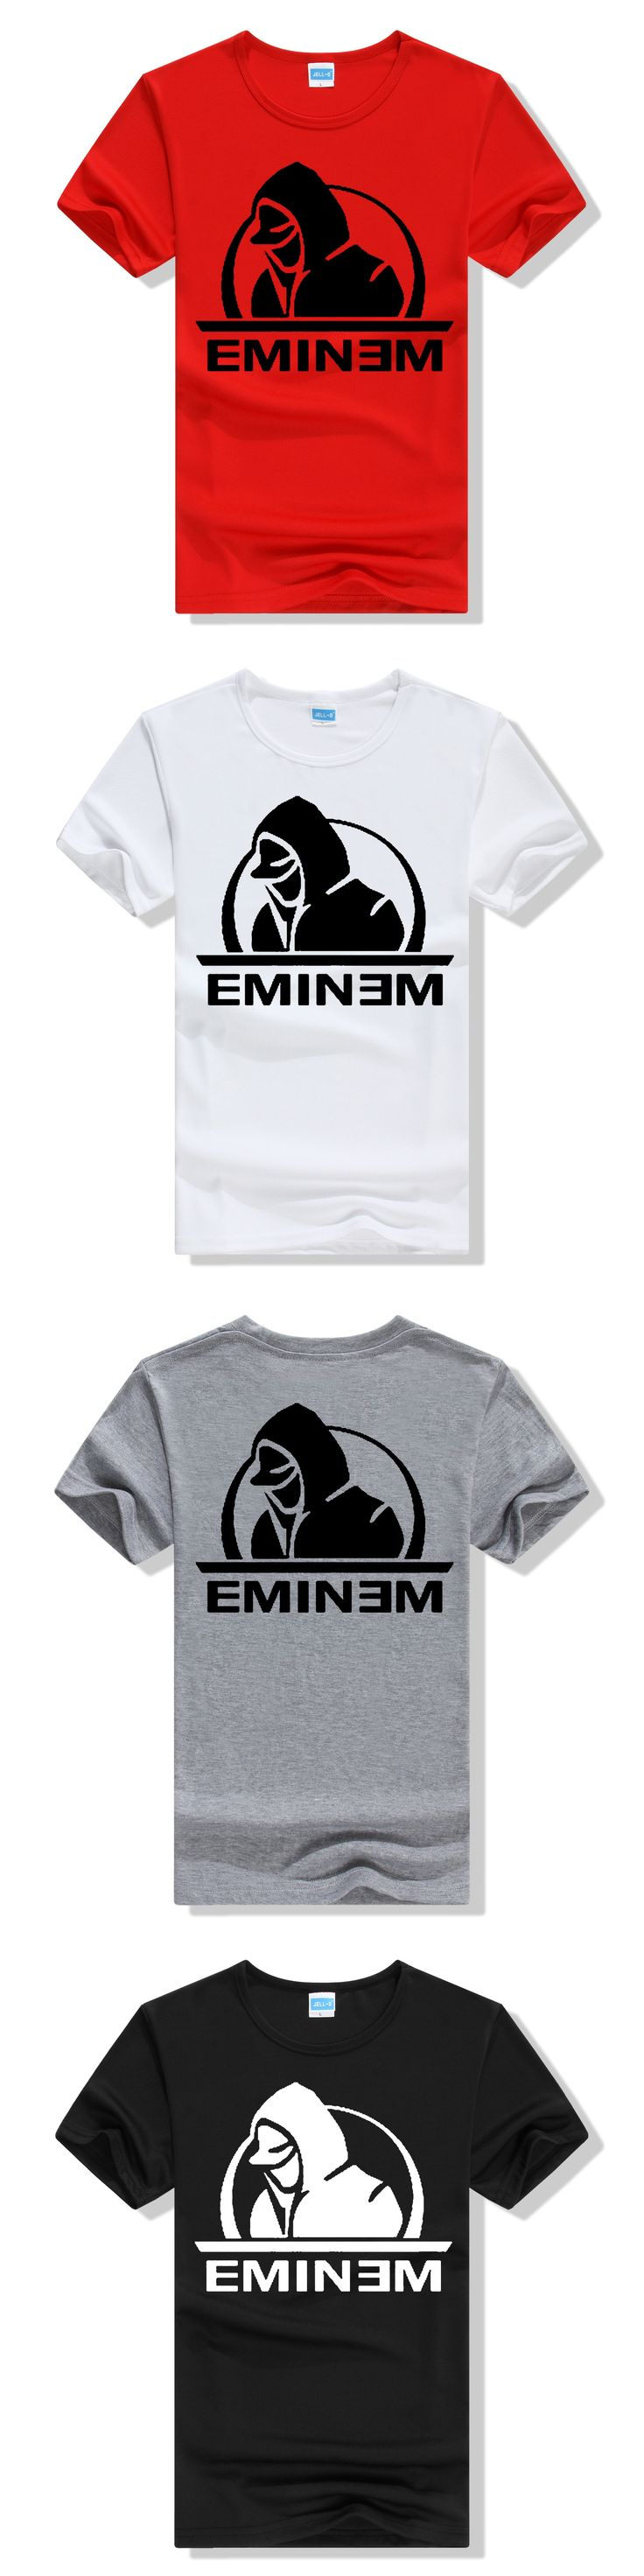 EMINEM The Marshall Mathers LP Men's T-Shirt summer hip hop fitness mma tshirt homme New Cotton Leisure fashion brand T-Shirt